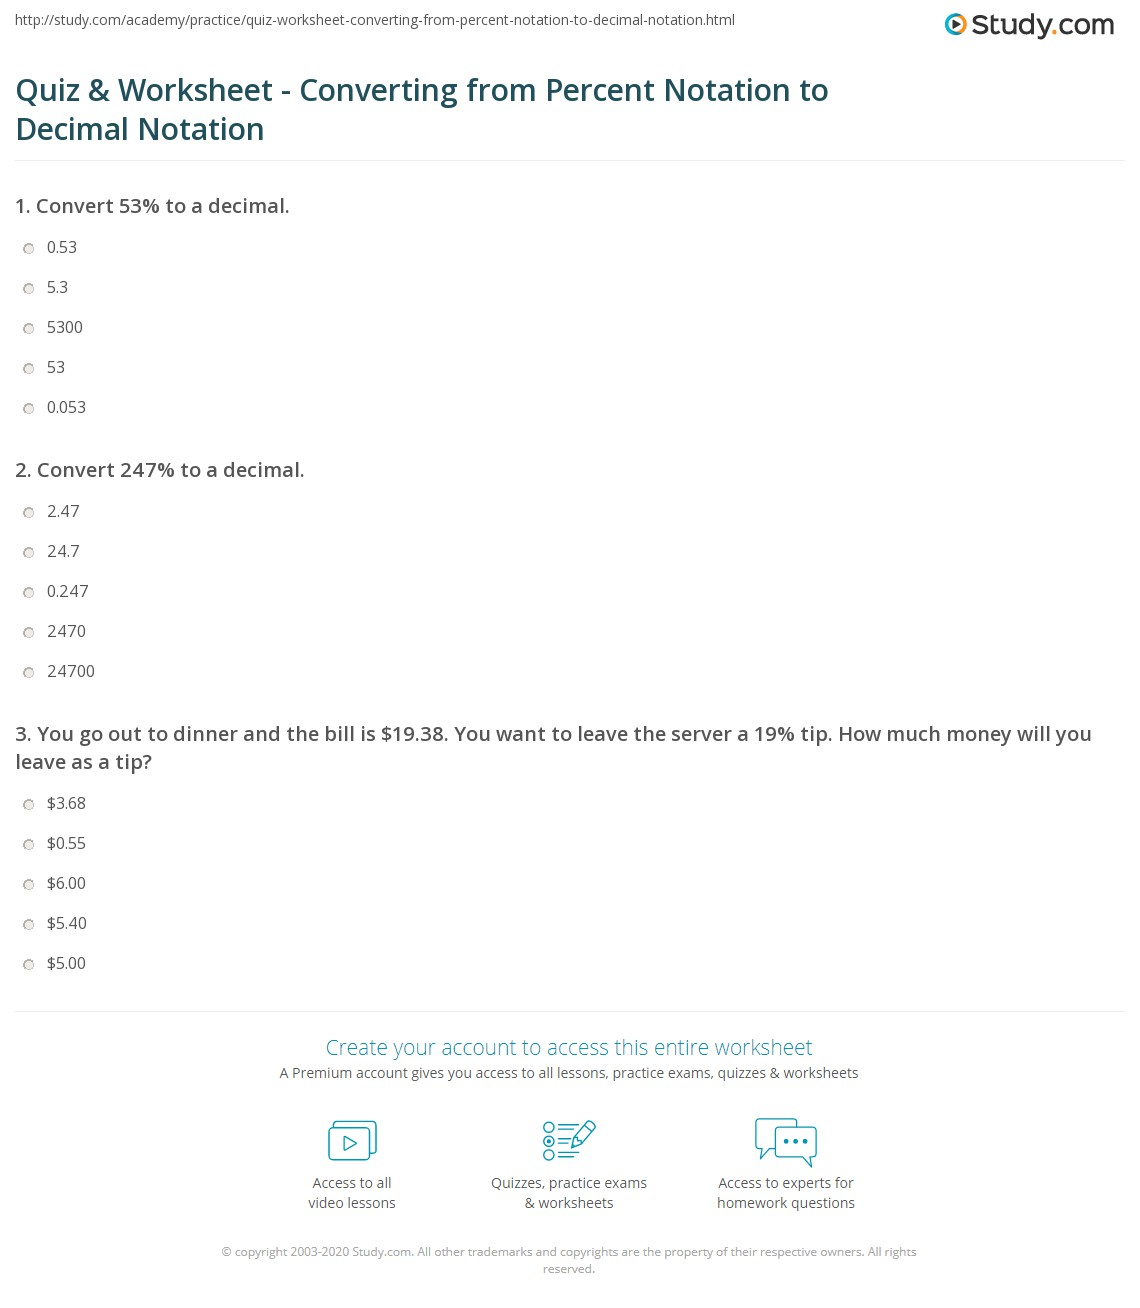 math worksheet : quiz  worksheet  converting from percent notation to decimal  : Converting Percents To Decimals Worksheets